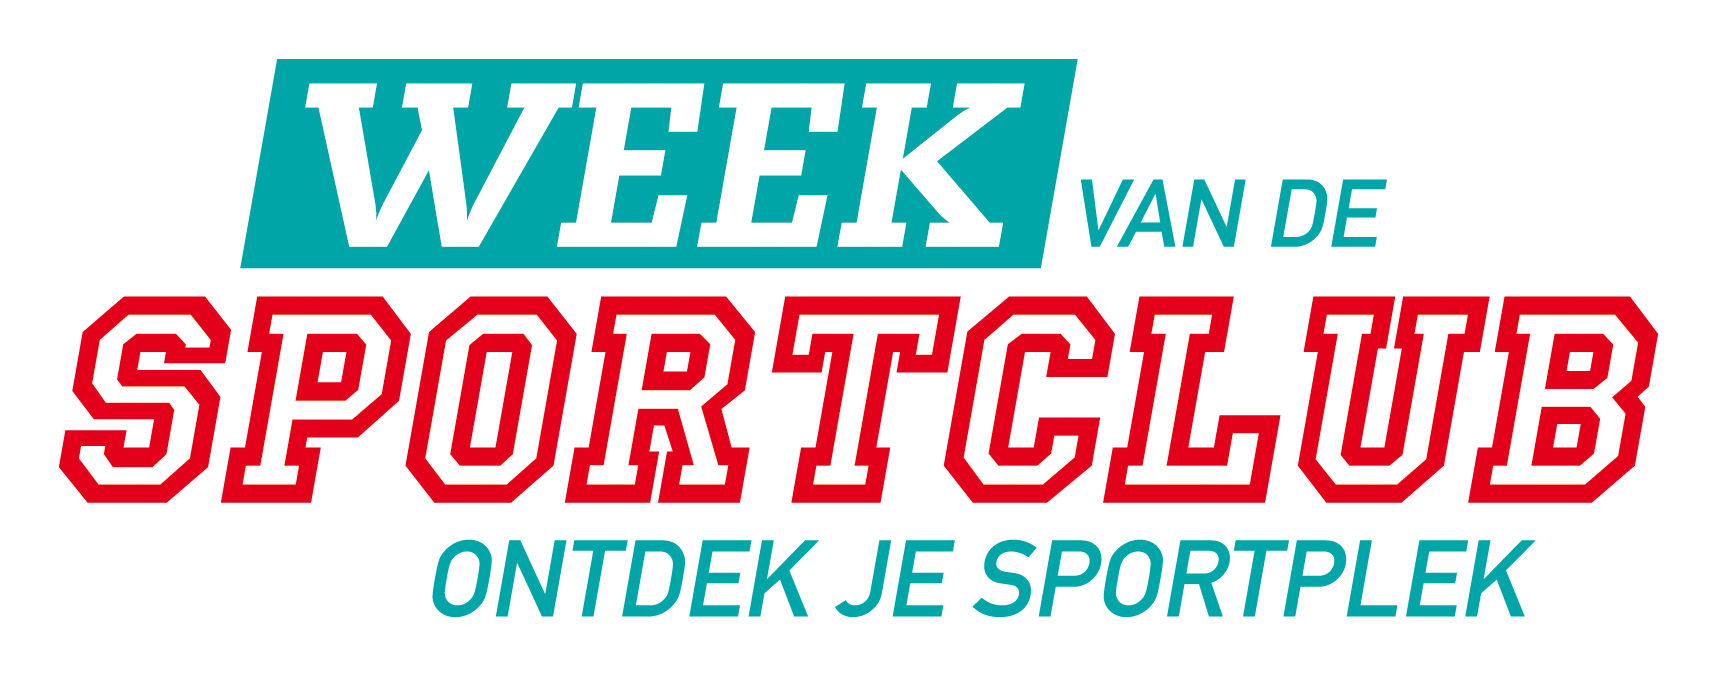 week van de sport club